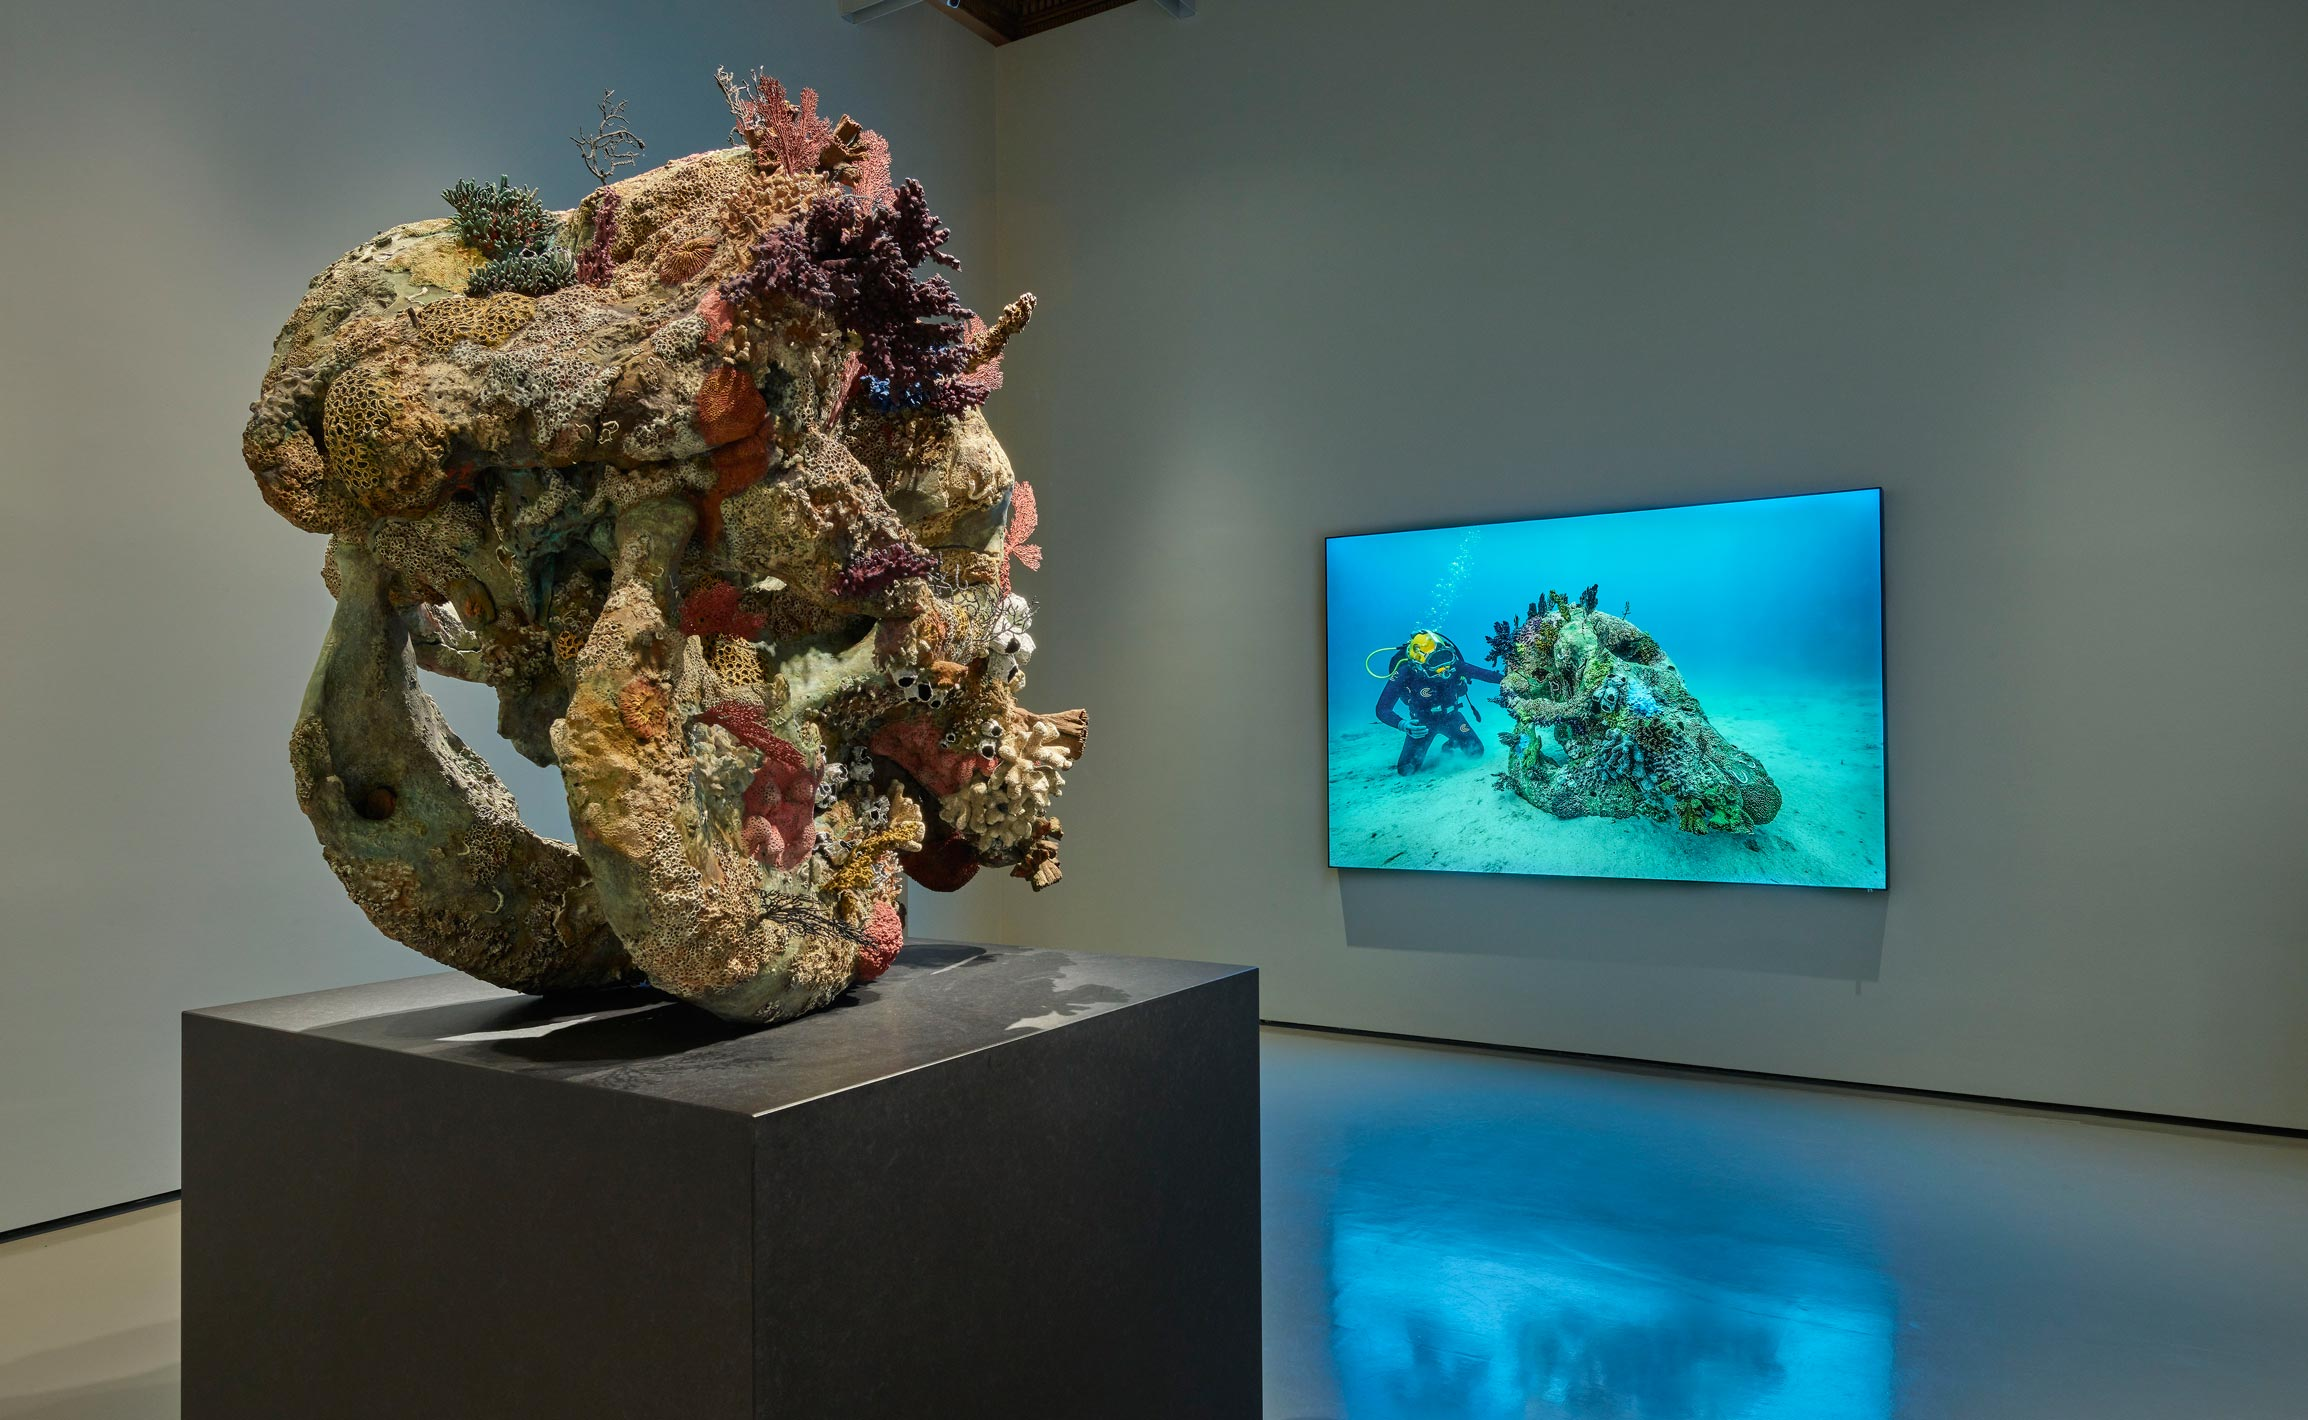 Room 5: